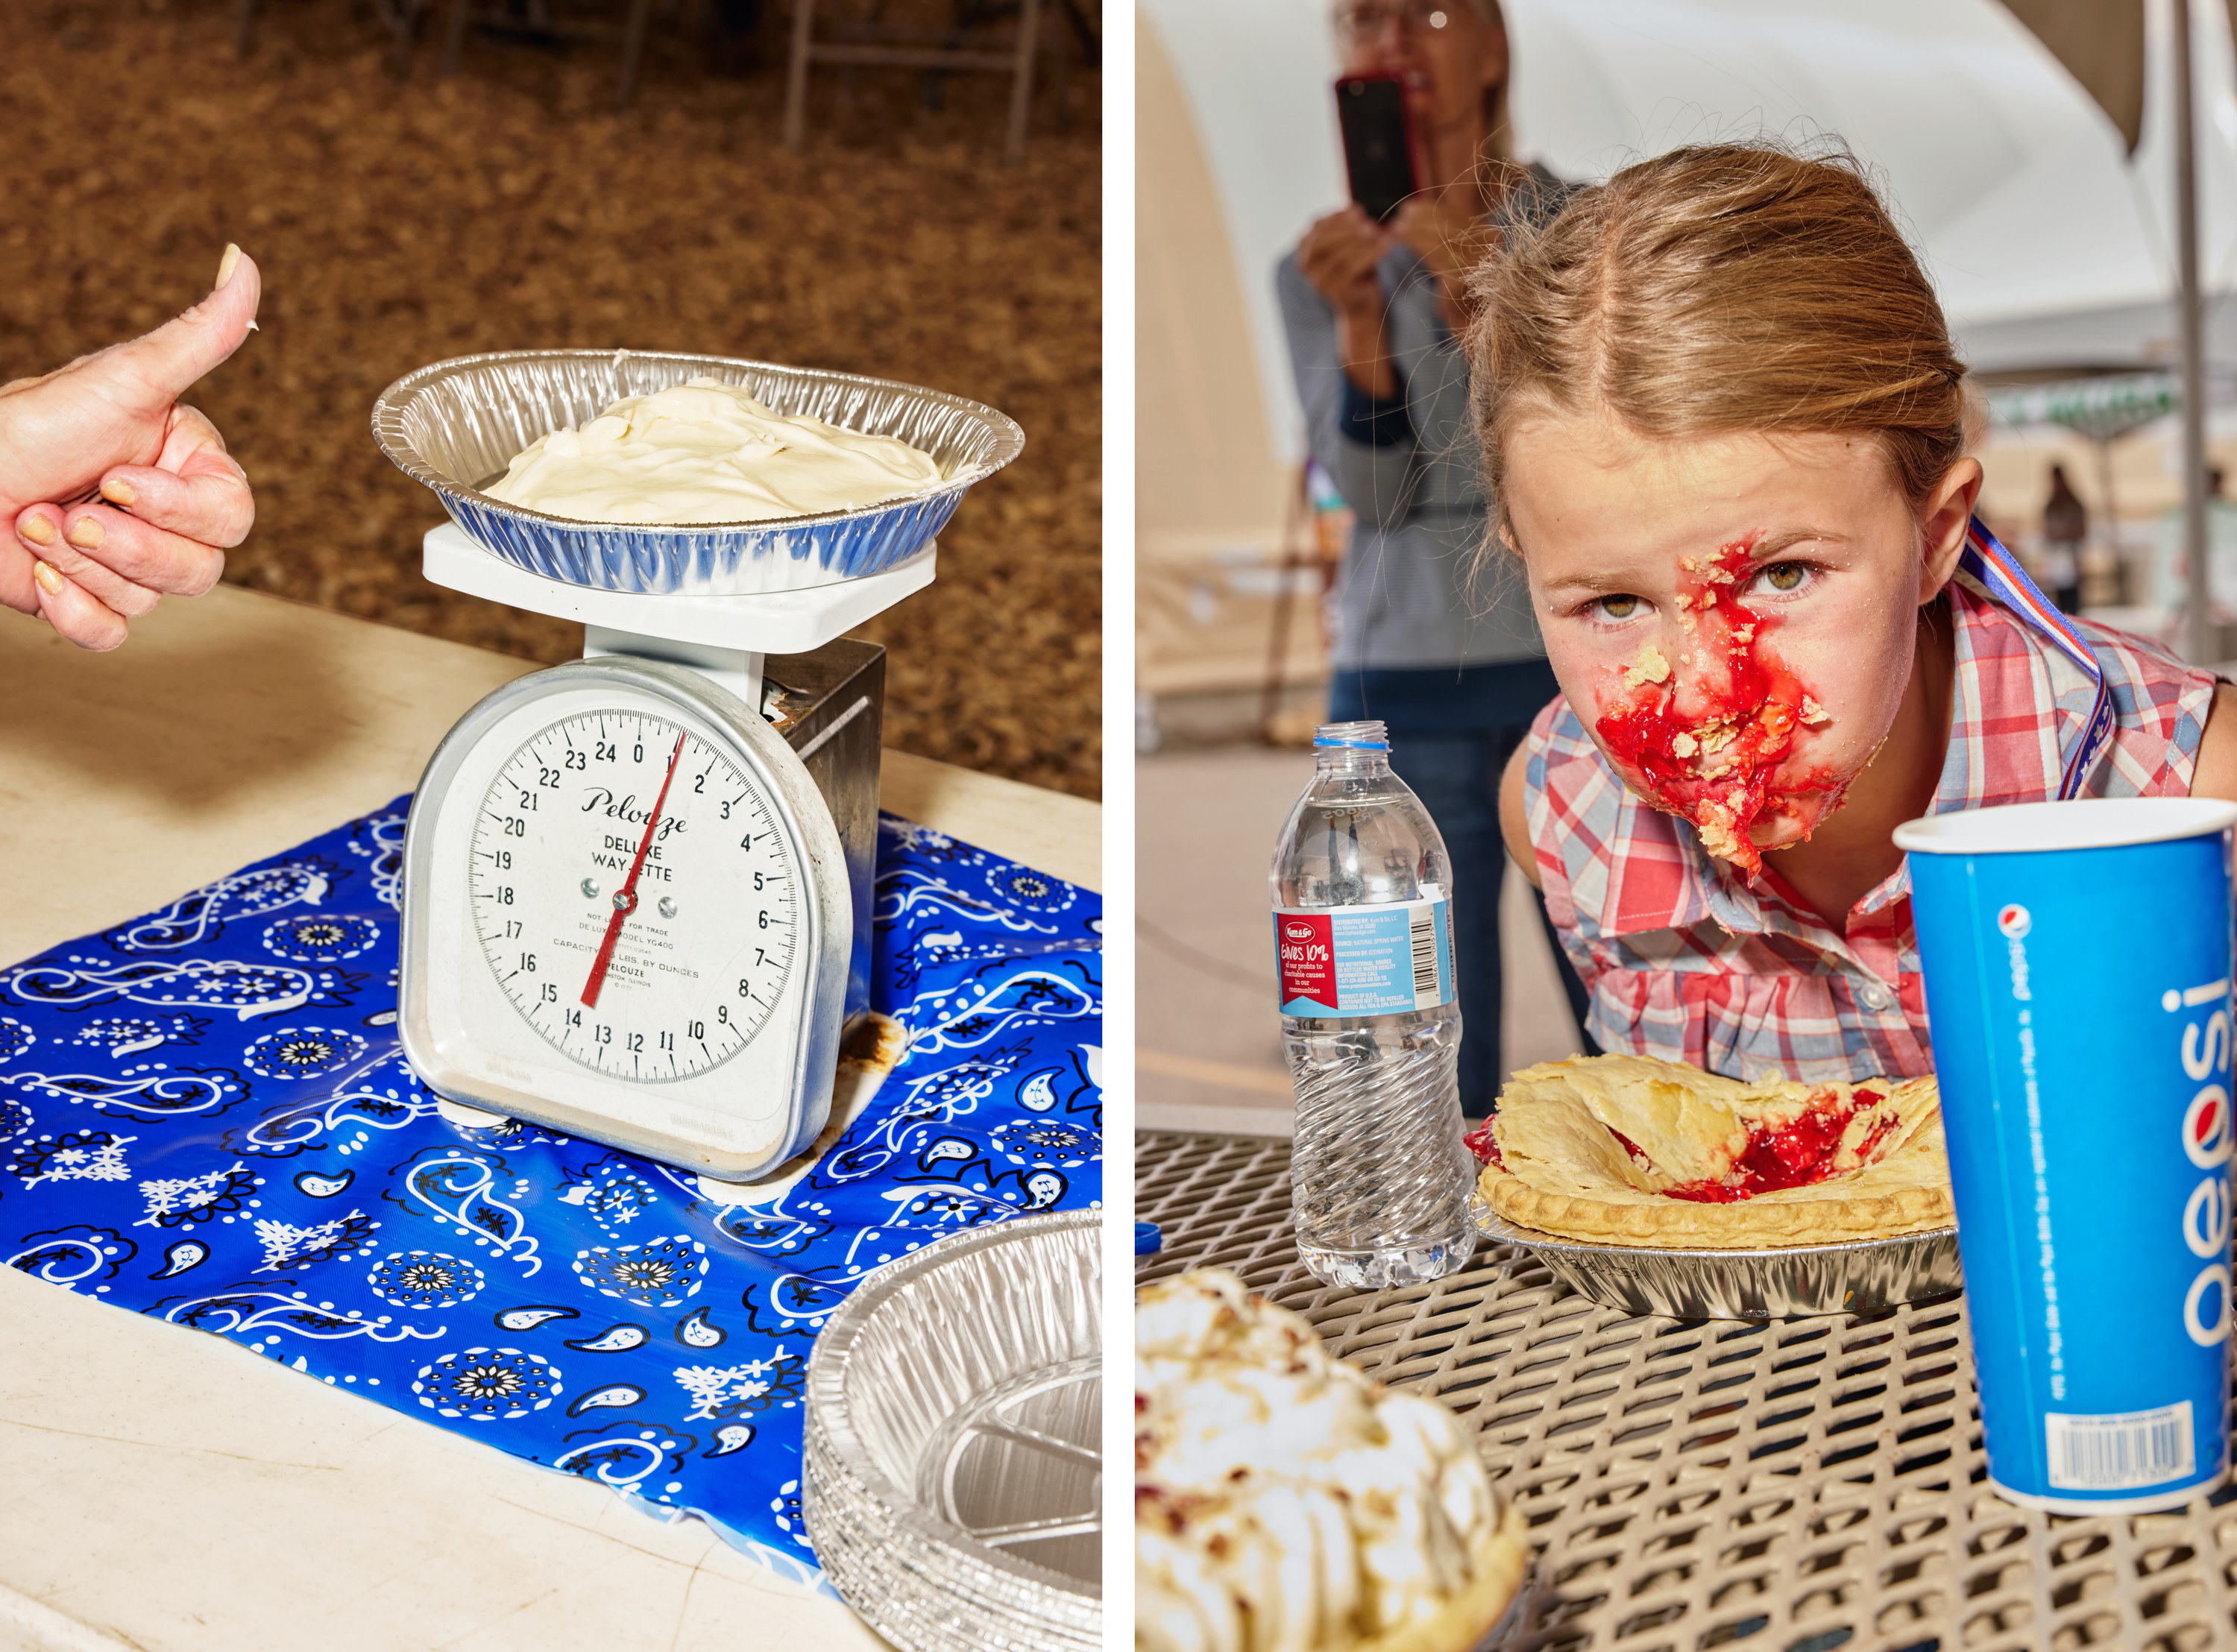 Left, a woman gives a thumbs-up as she weighs a pound of custard, right, a girl with her face covered by pie filling as she sits at a table